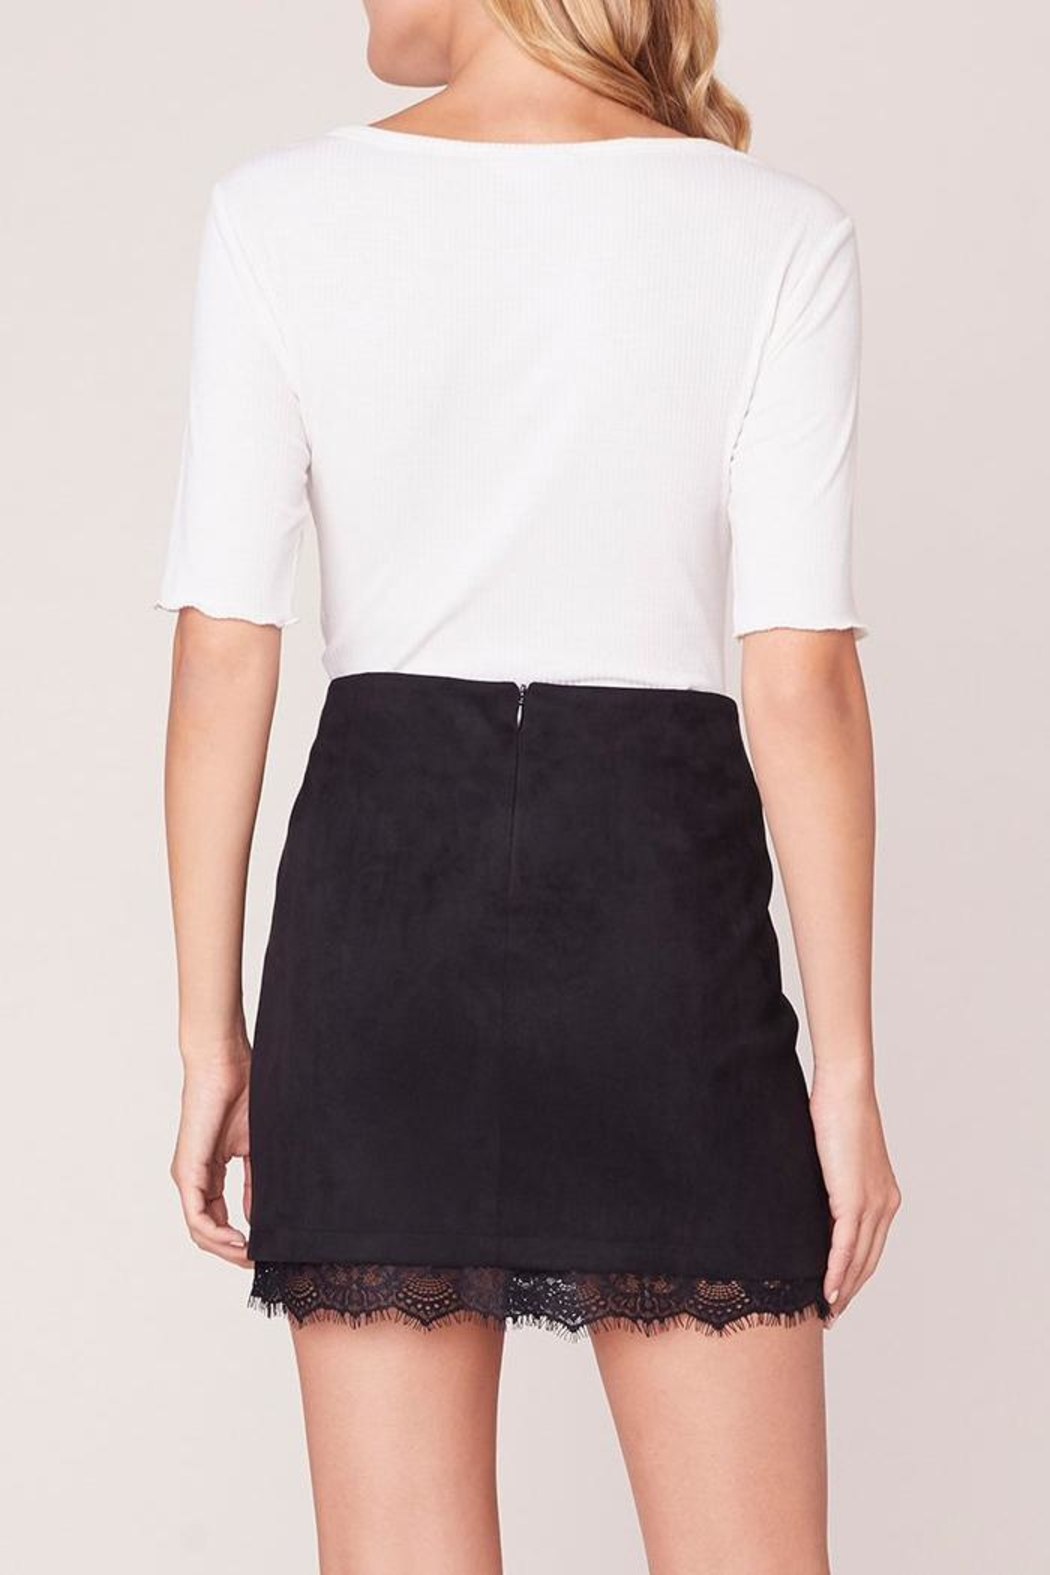 Jack by BB Dakota Lace Trim Skirt - Back Cropped Image